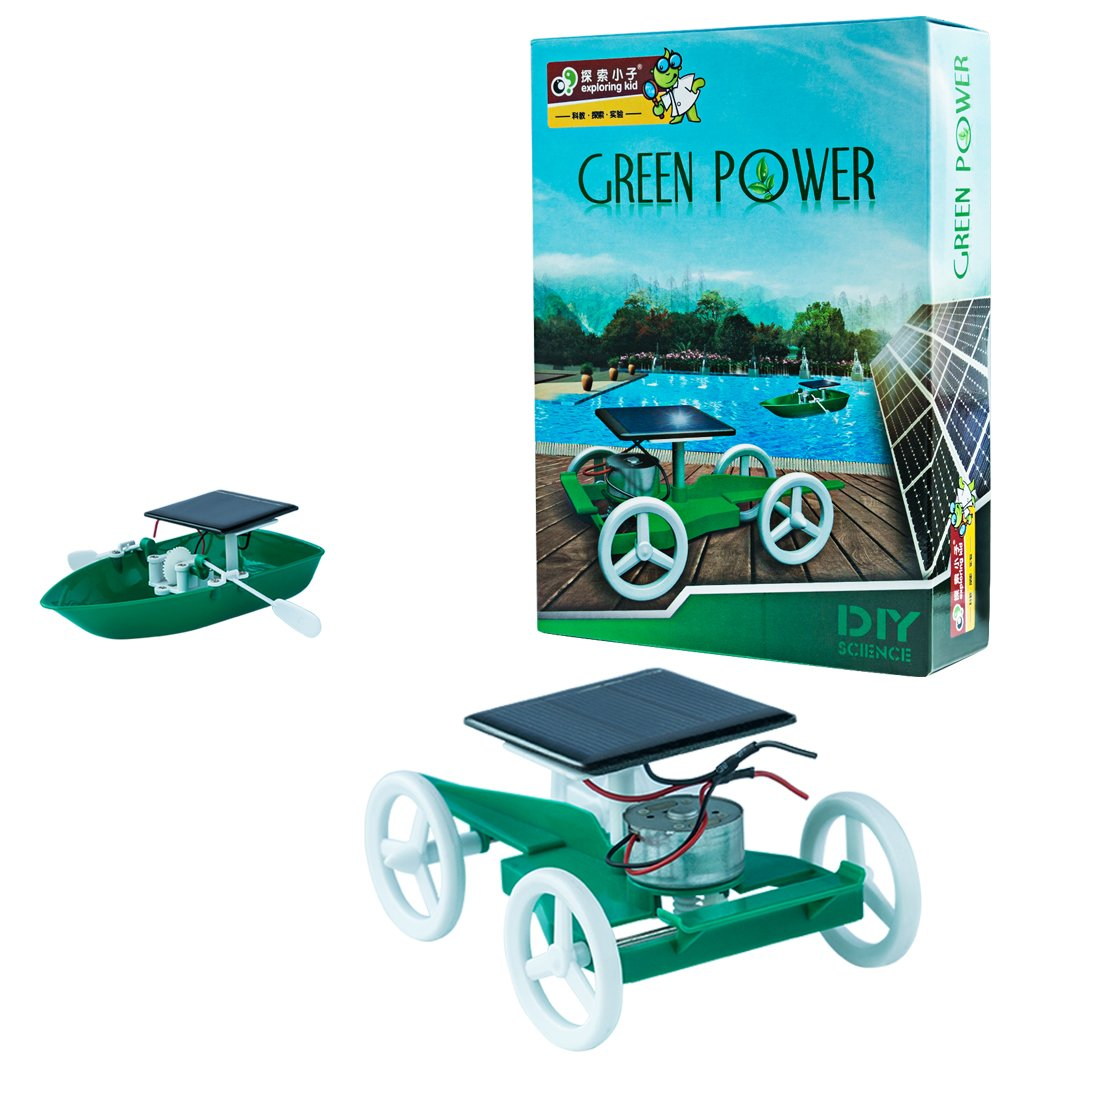 Yamix Science Kits 2 In 1 Solar Vehicle and Boat Experiment STEM Learning Toys Assembly Toy for Boys Girls Toddler Age 8+